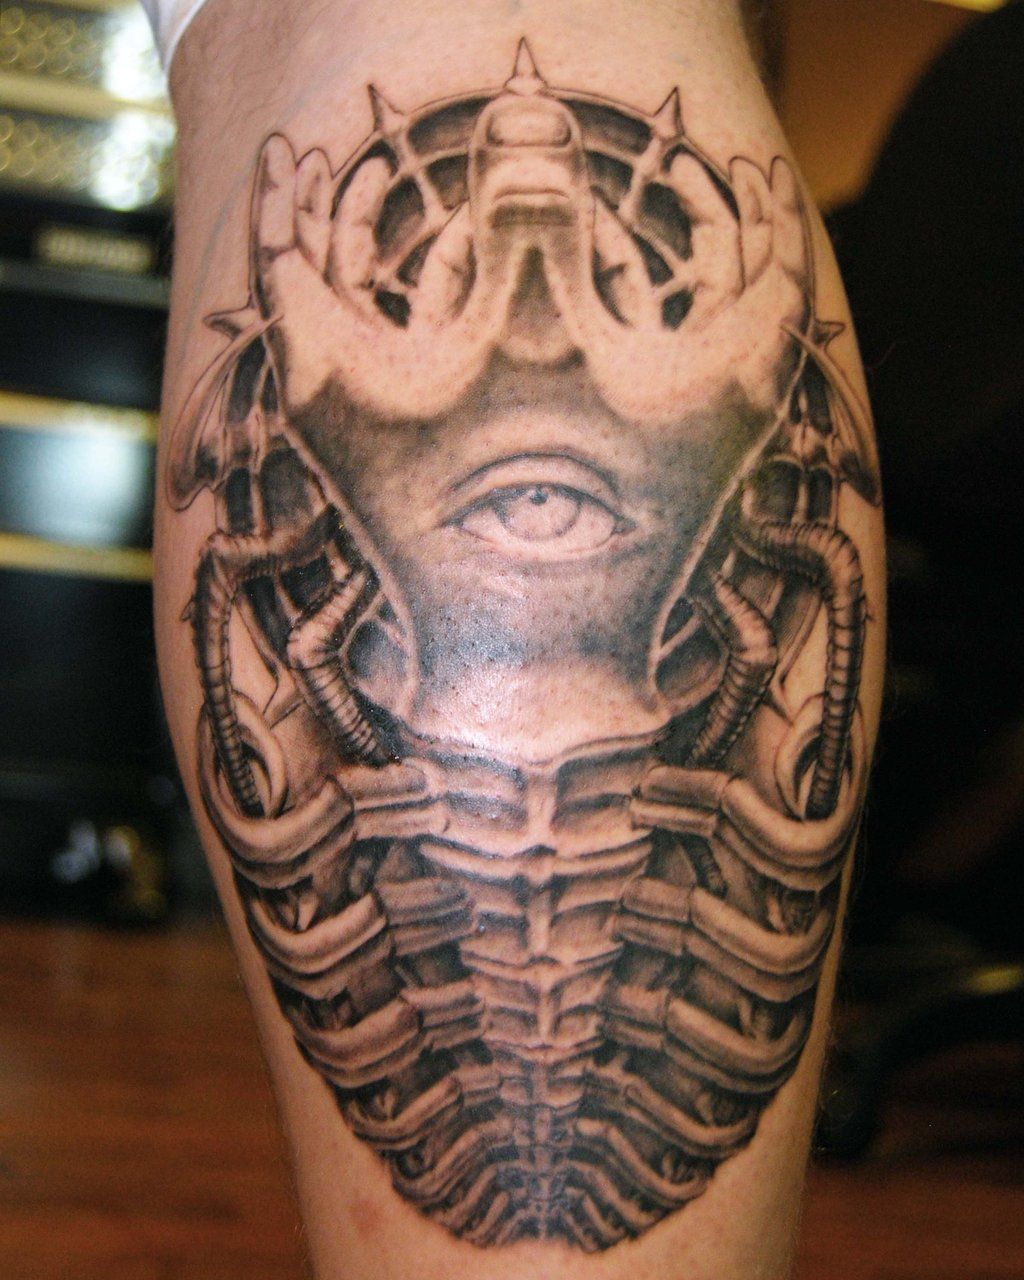 Eye Tattoos Designs, Ideas and Meaning | Tattoos For You